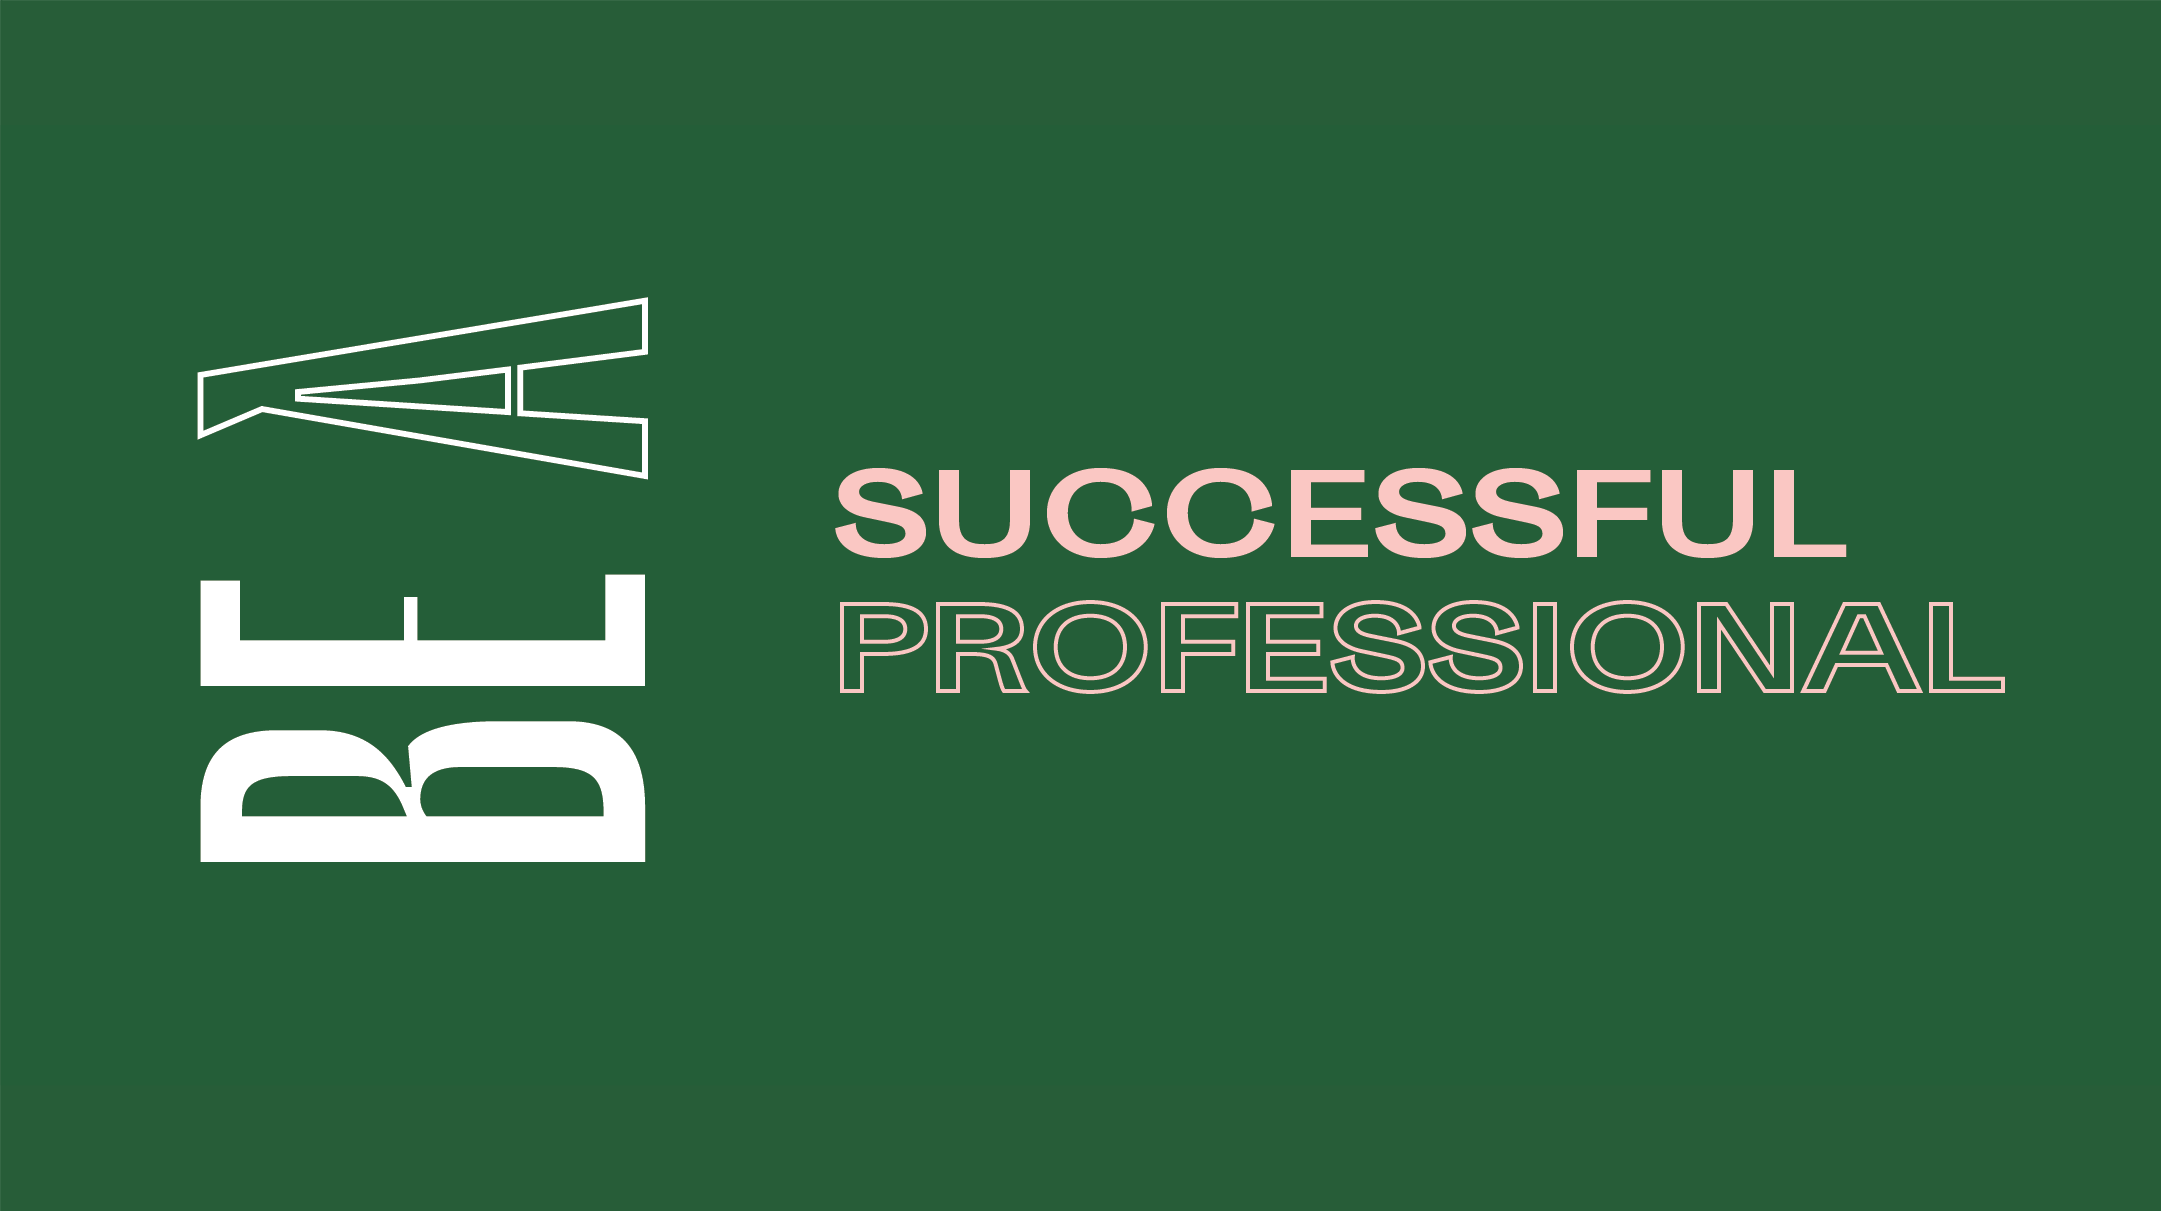 Be A Successful Professional